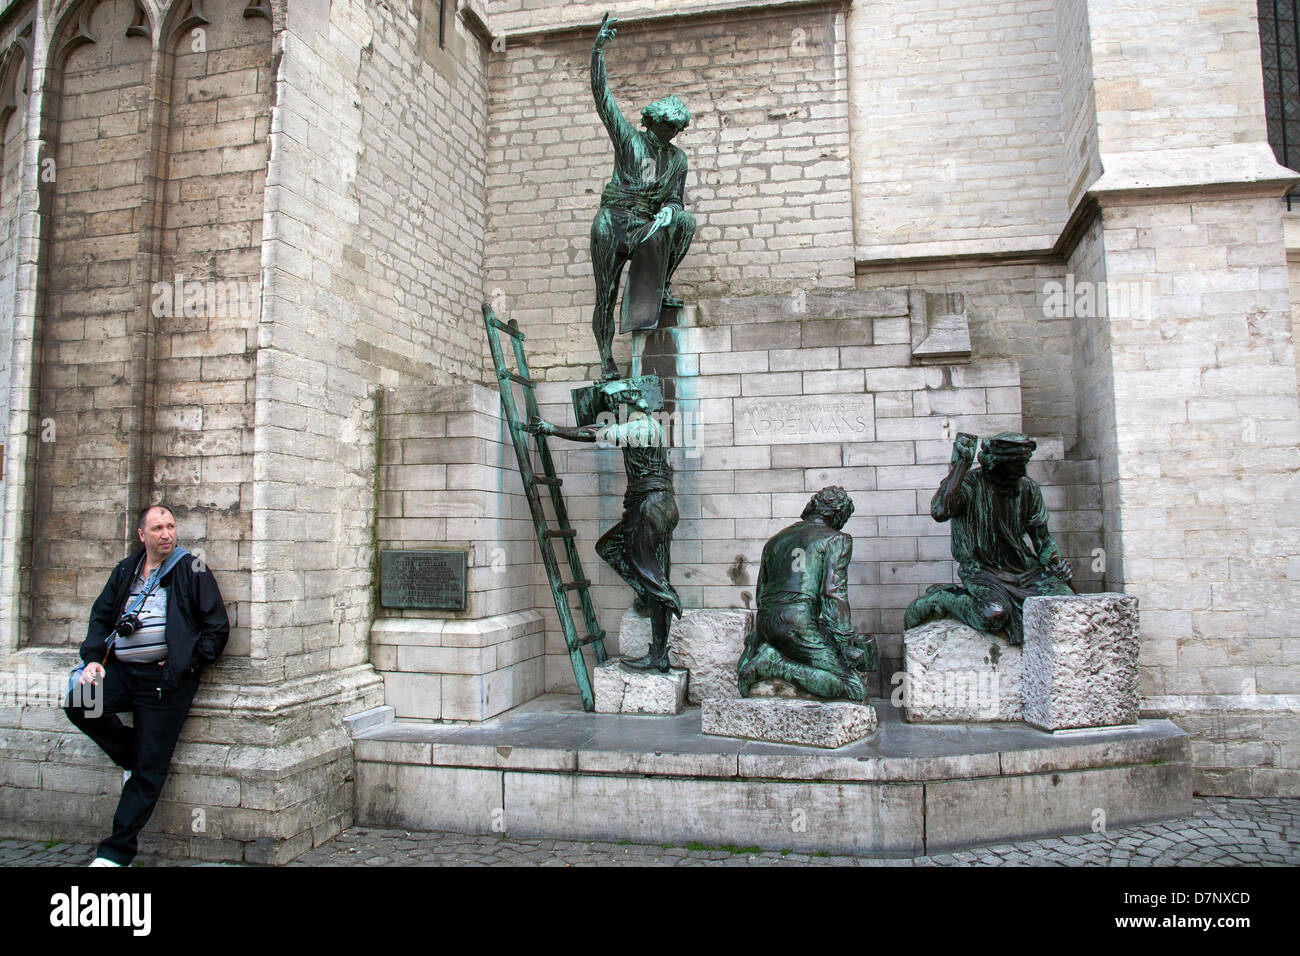 Statue of stonemasons working on the construction of the cathedral, Cathedral of Our Lady, Antwerp - Stock Image